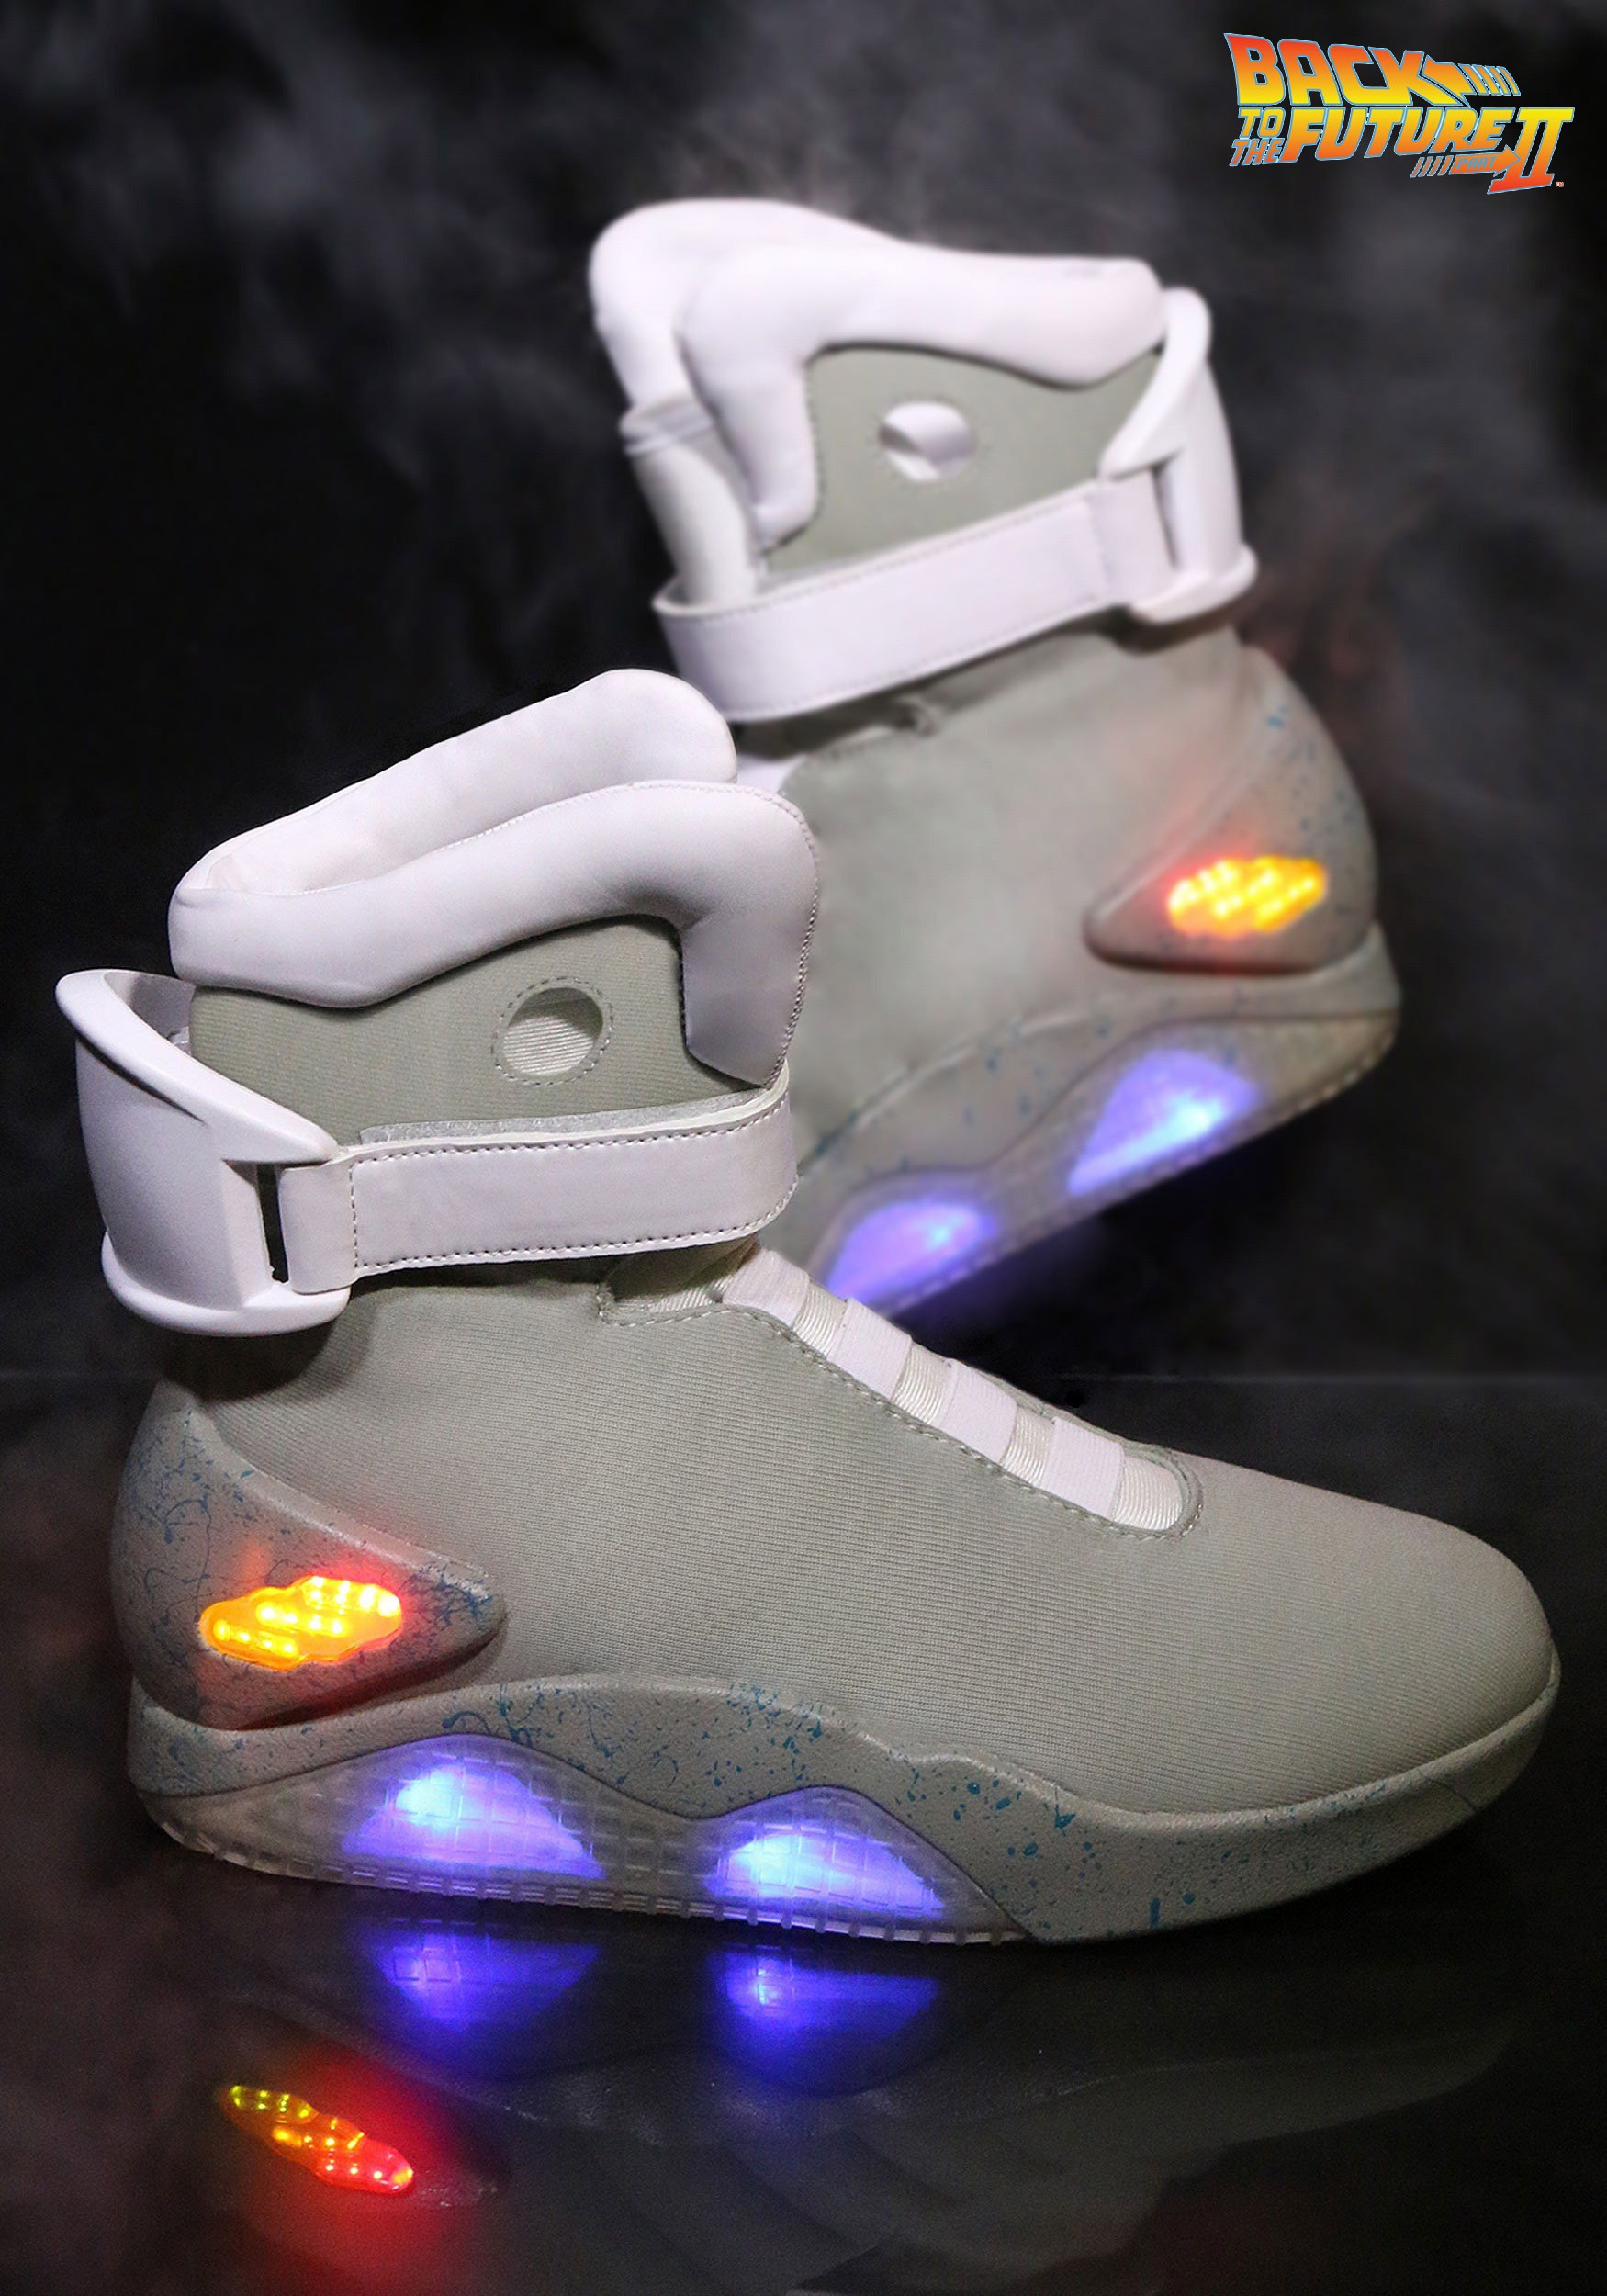 97ac96c3885 back-to-the-future-2-light-up-shoes.jpg